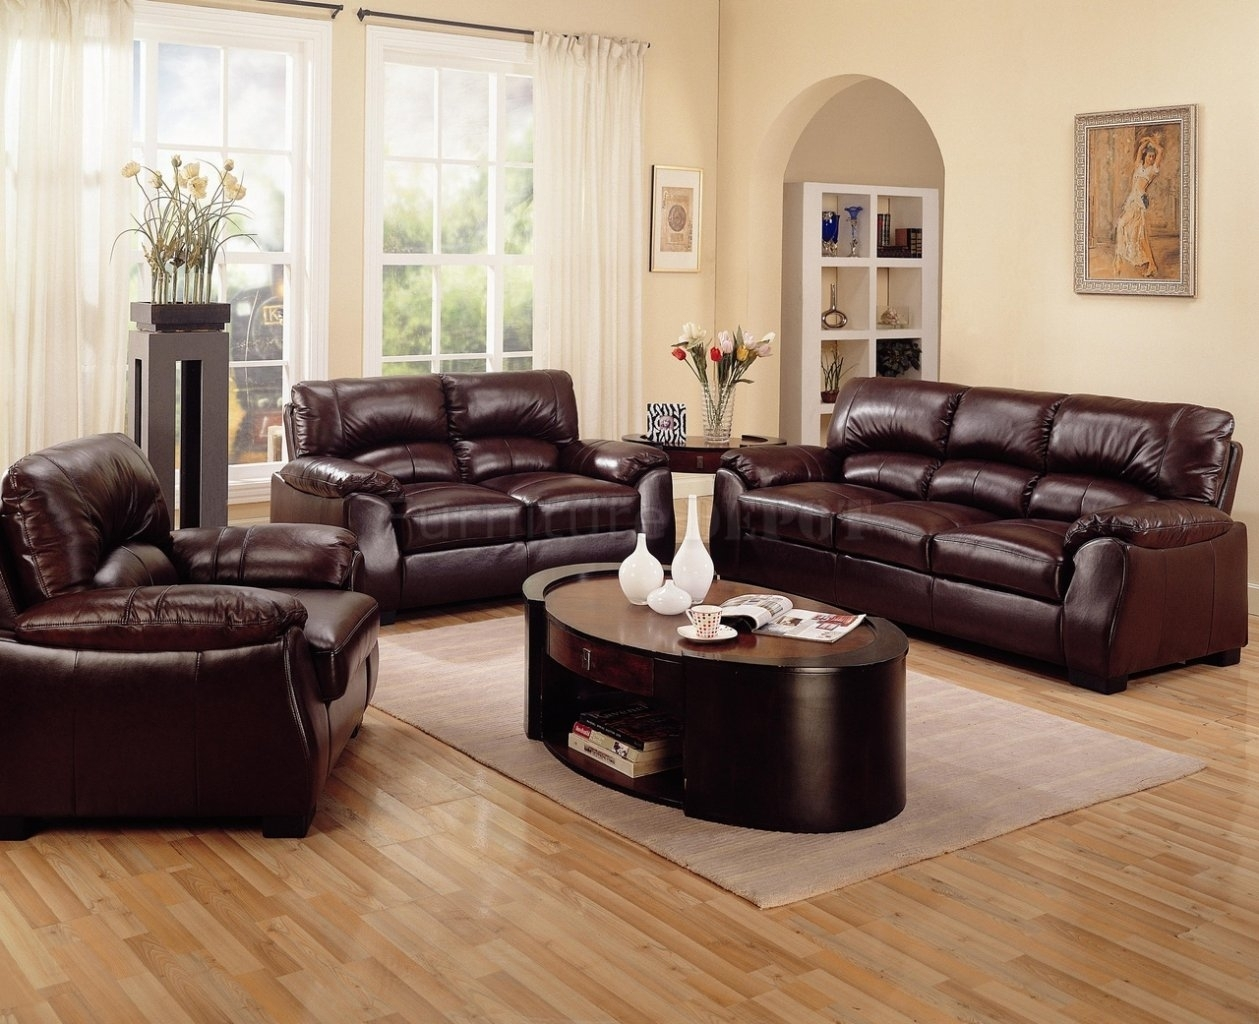 living room ideas with leather furniture room design ideas brown leather sofa with brown leather living RVAFMPC